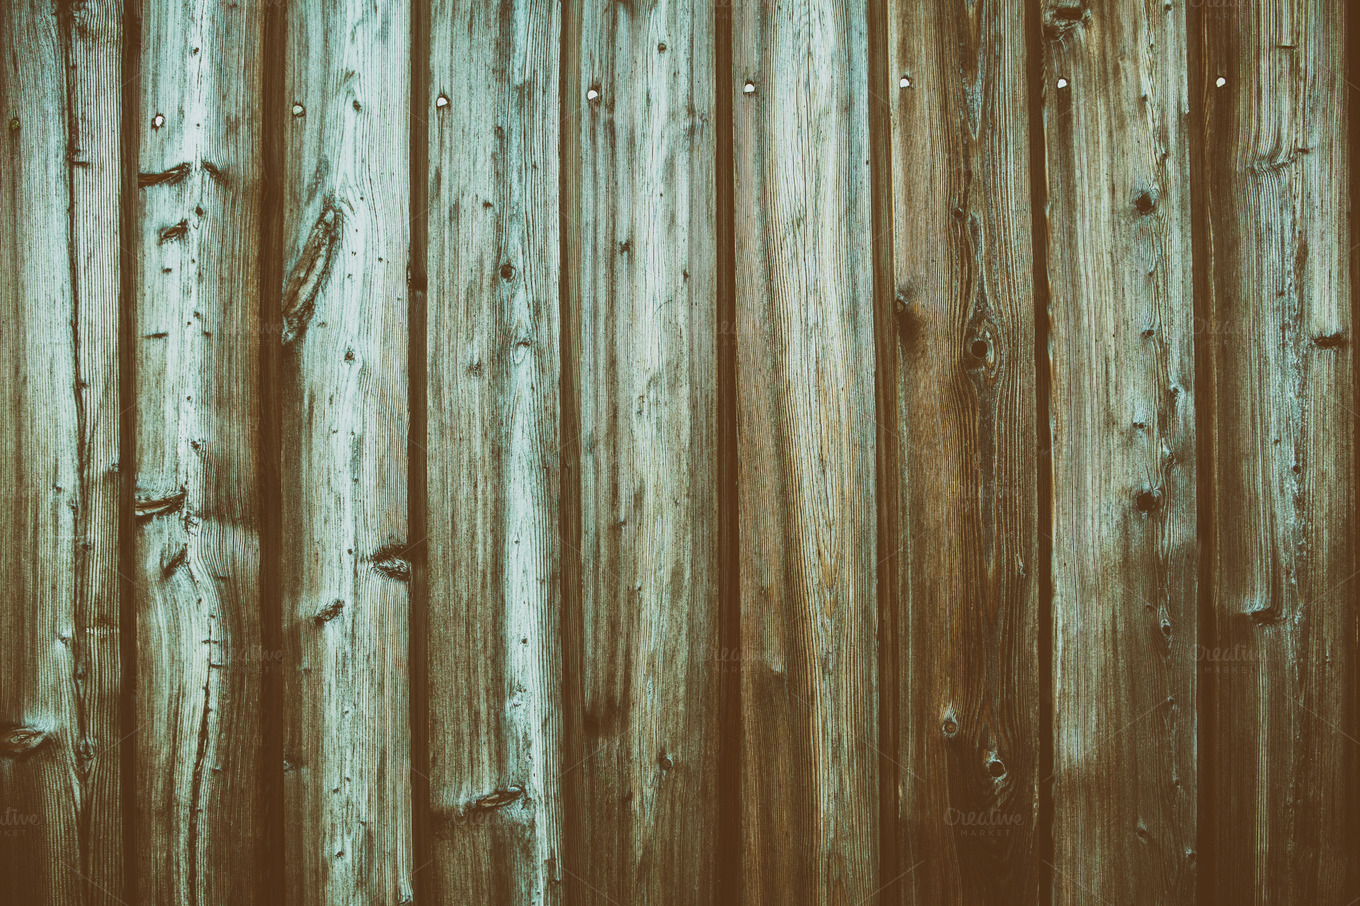 Amazing photo of Wood Panels Texture ~ Abstract Photos on Creative Market with #50361C color and 1360x906 pixels